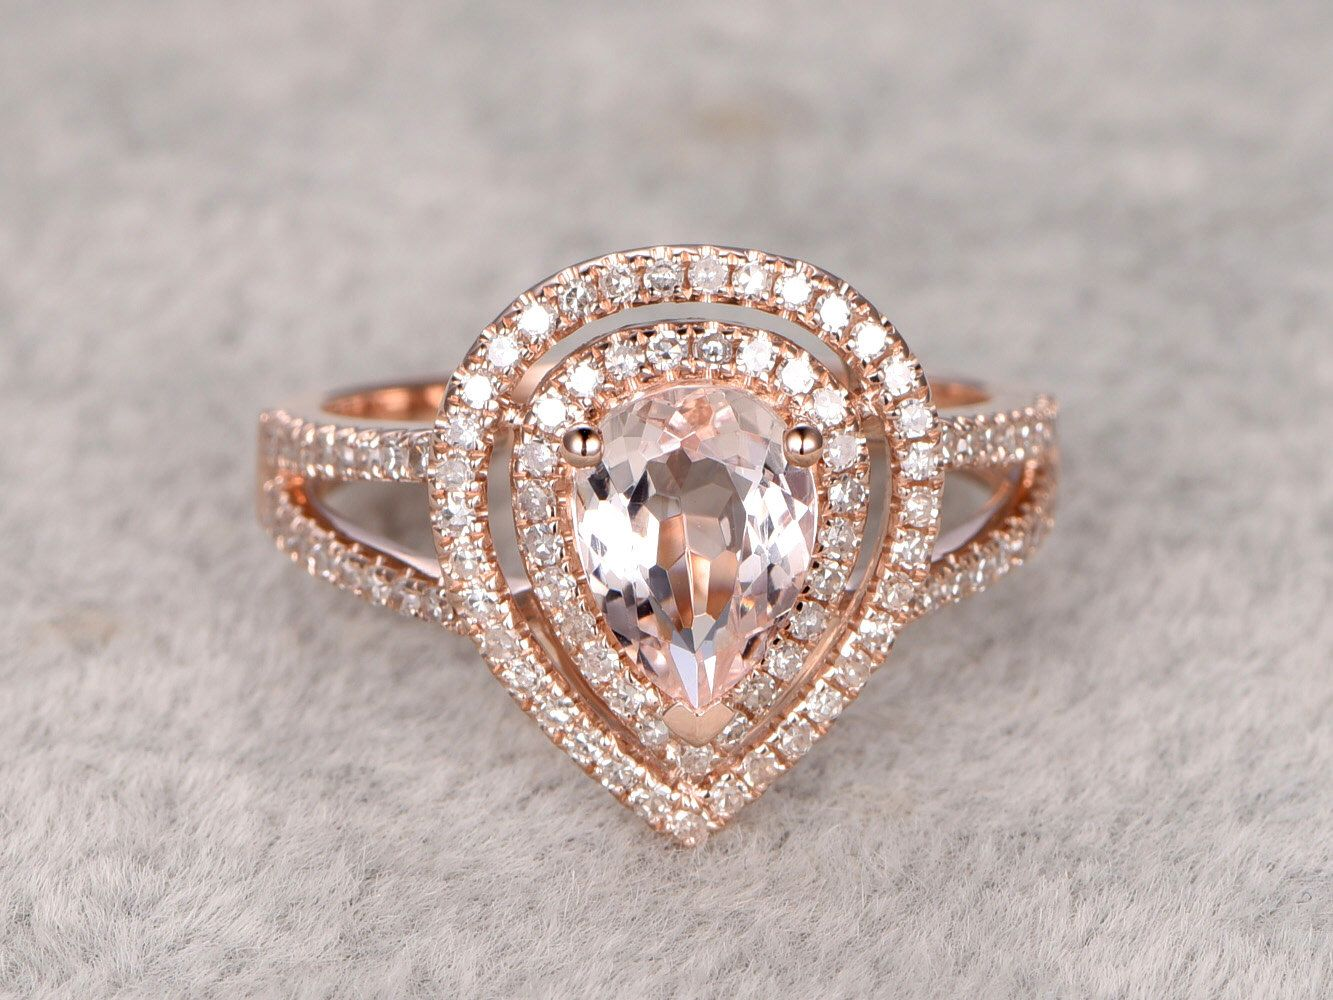 Best 25+ Morganite Engagement Ideas On Pinterest  Wedding And Engagement  Rings, Rose Gold Square Engagement Ring And Morganite Jewelry